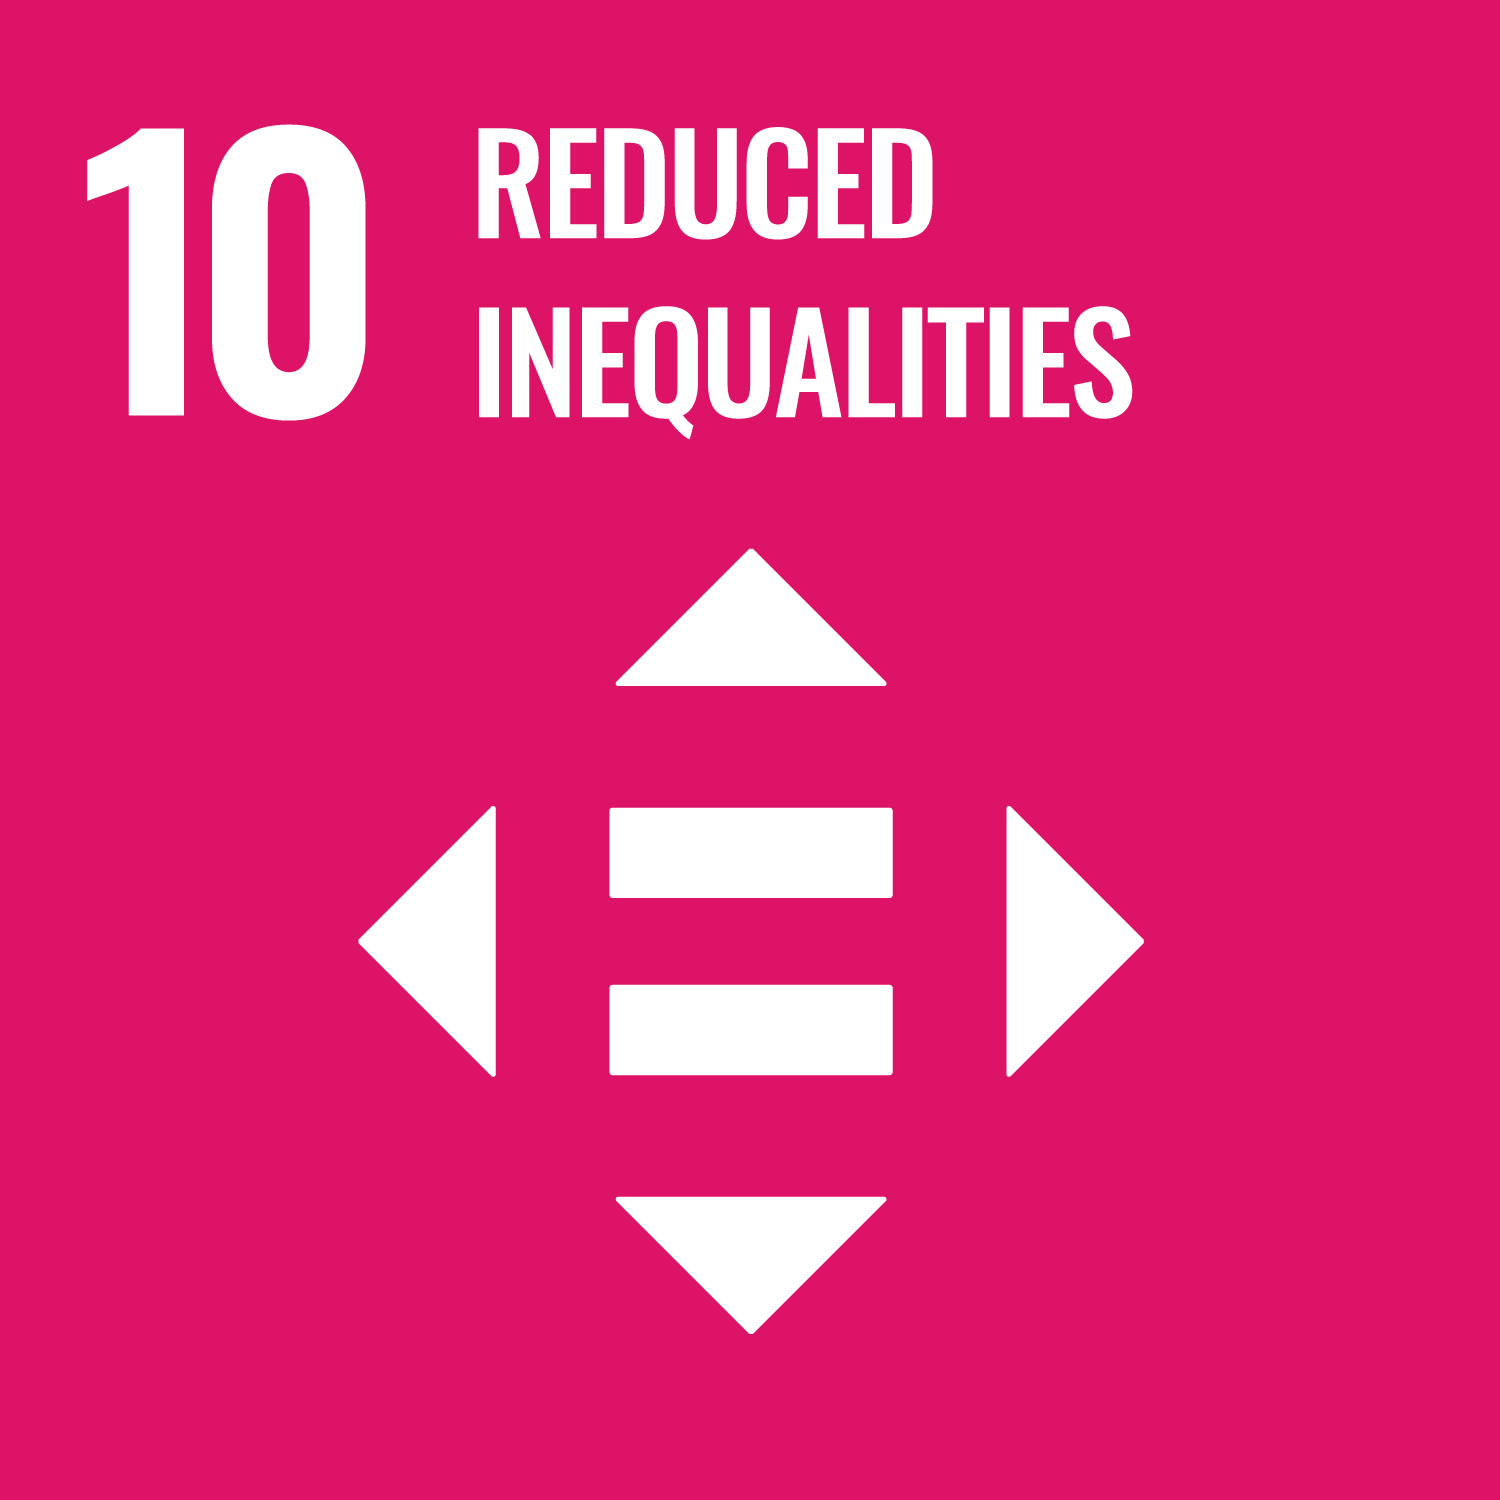 10 - Reduced Inequality